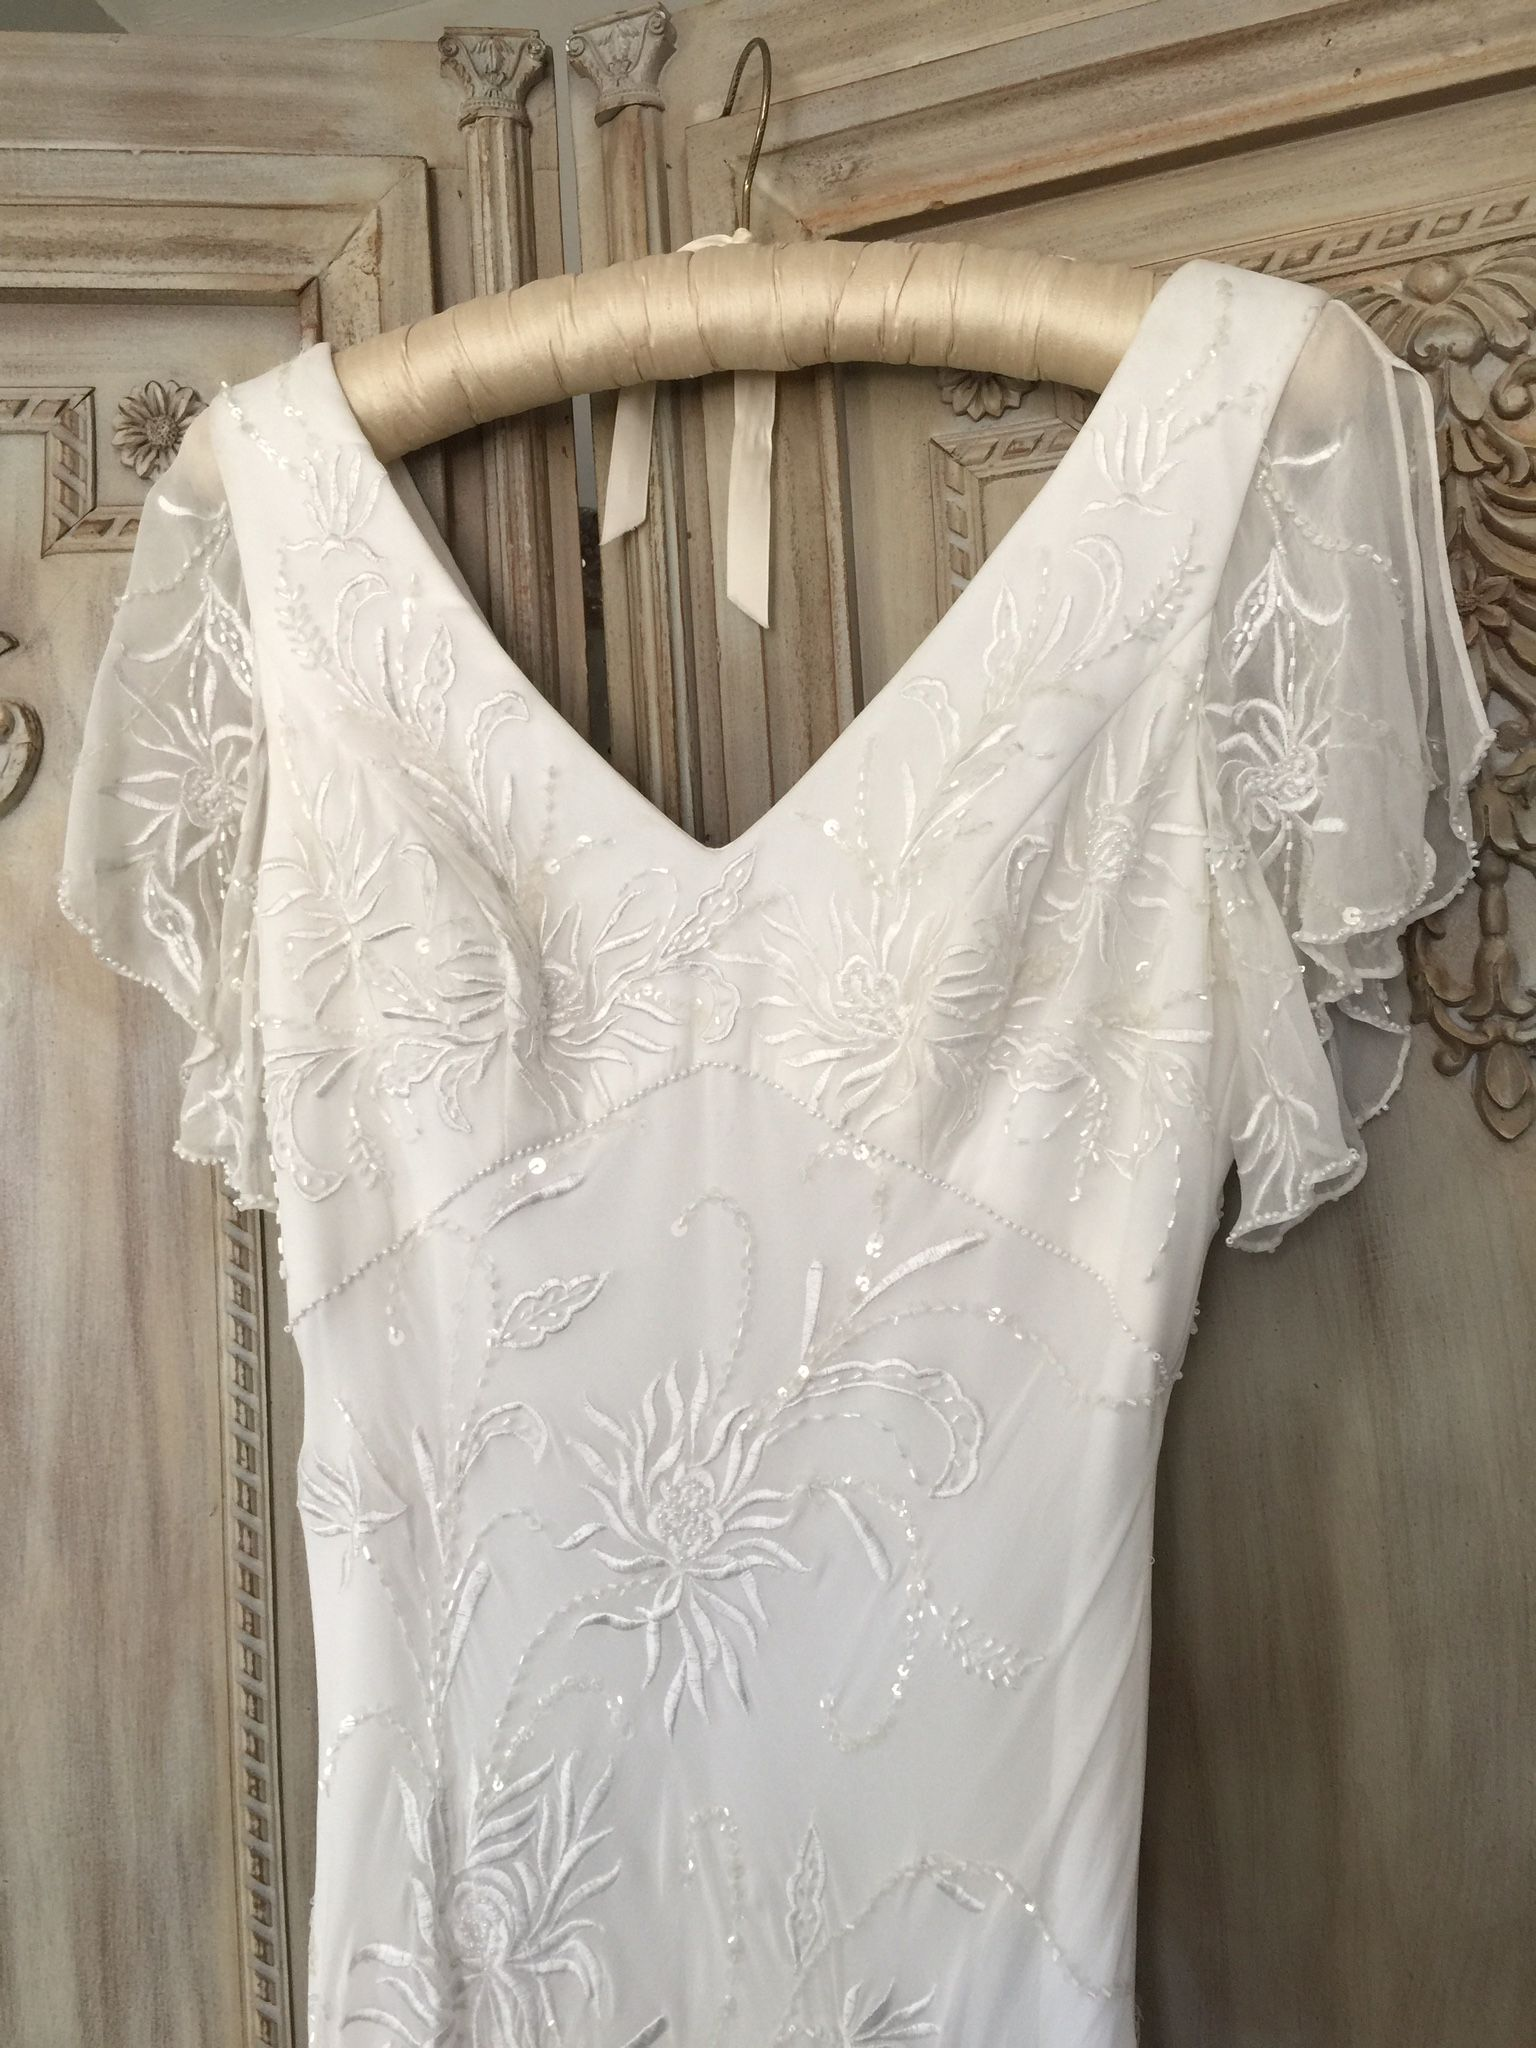 "Eliza Jane Howell ""Amelia"" brand new sample dress. £795 #bride #bridetobe #wedding #weddingdress #elizajanehowell #sampledress #london #teddington #surrey #richmond"